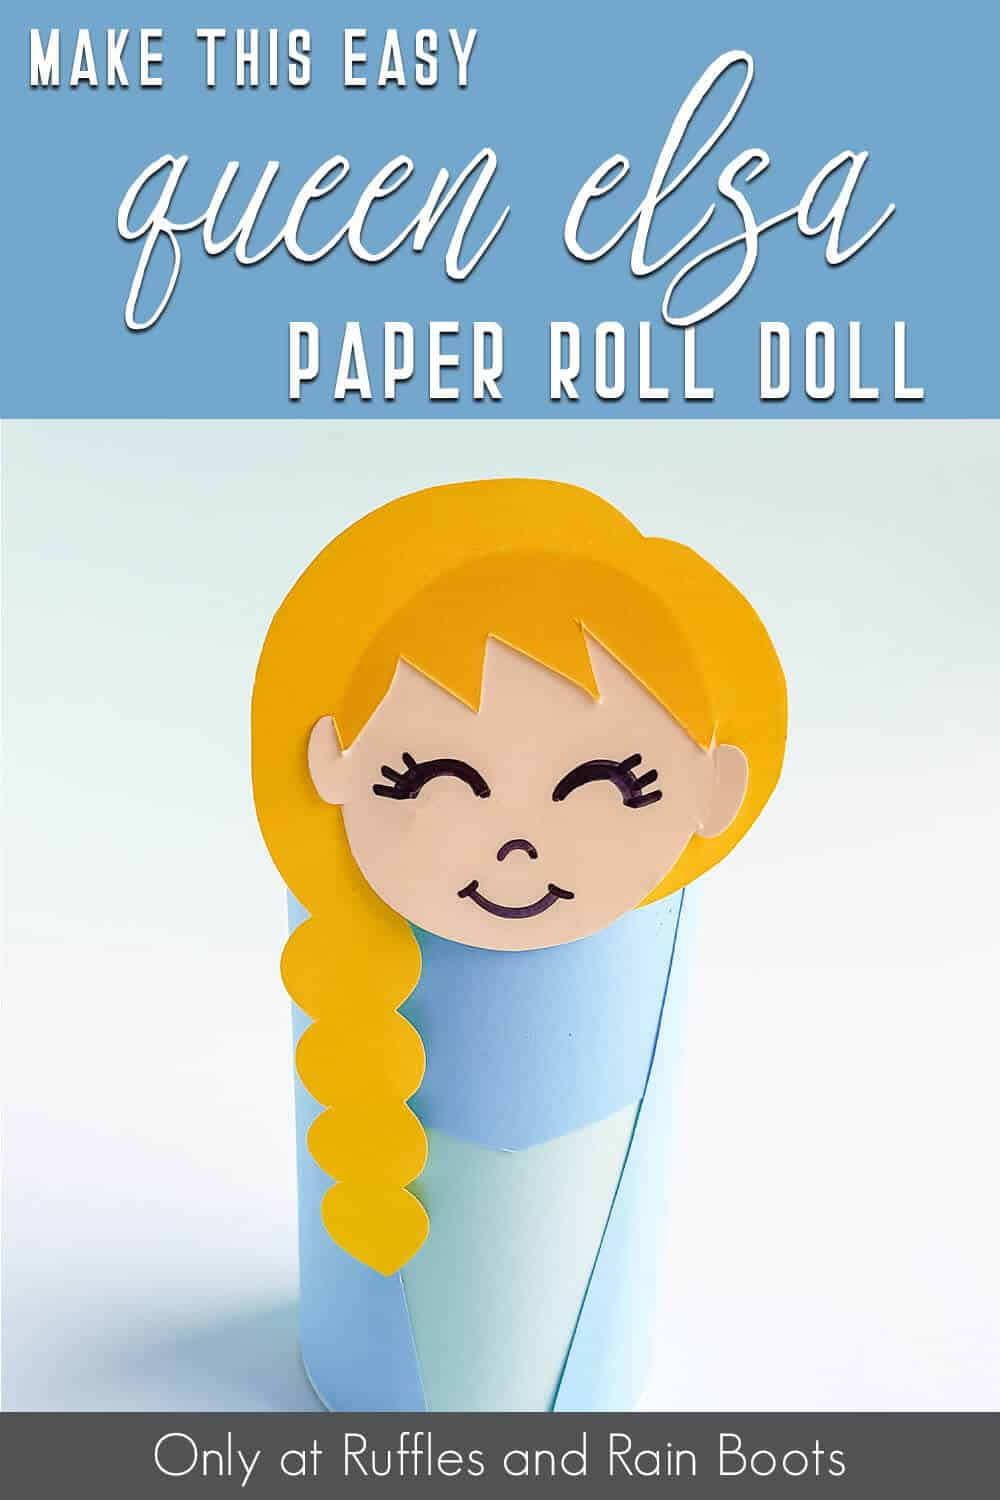 frozen elsa paper roll doll kids craft with text which reads make this easy queen elsa paper roll doll